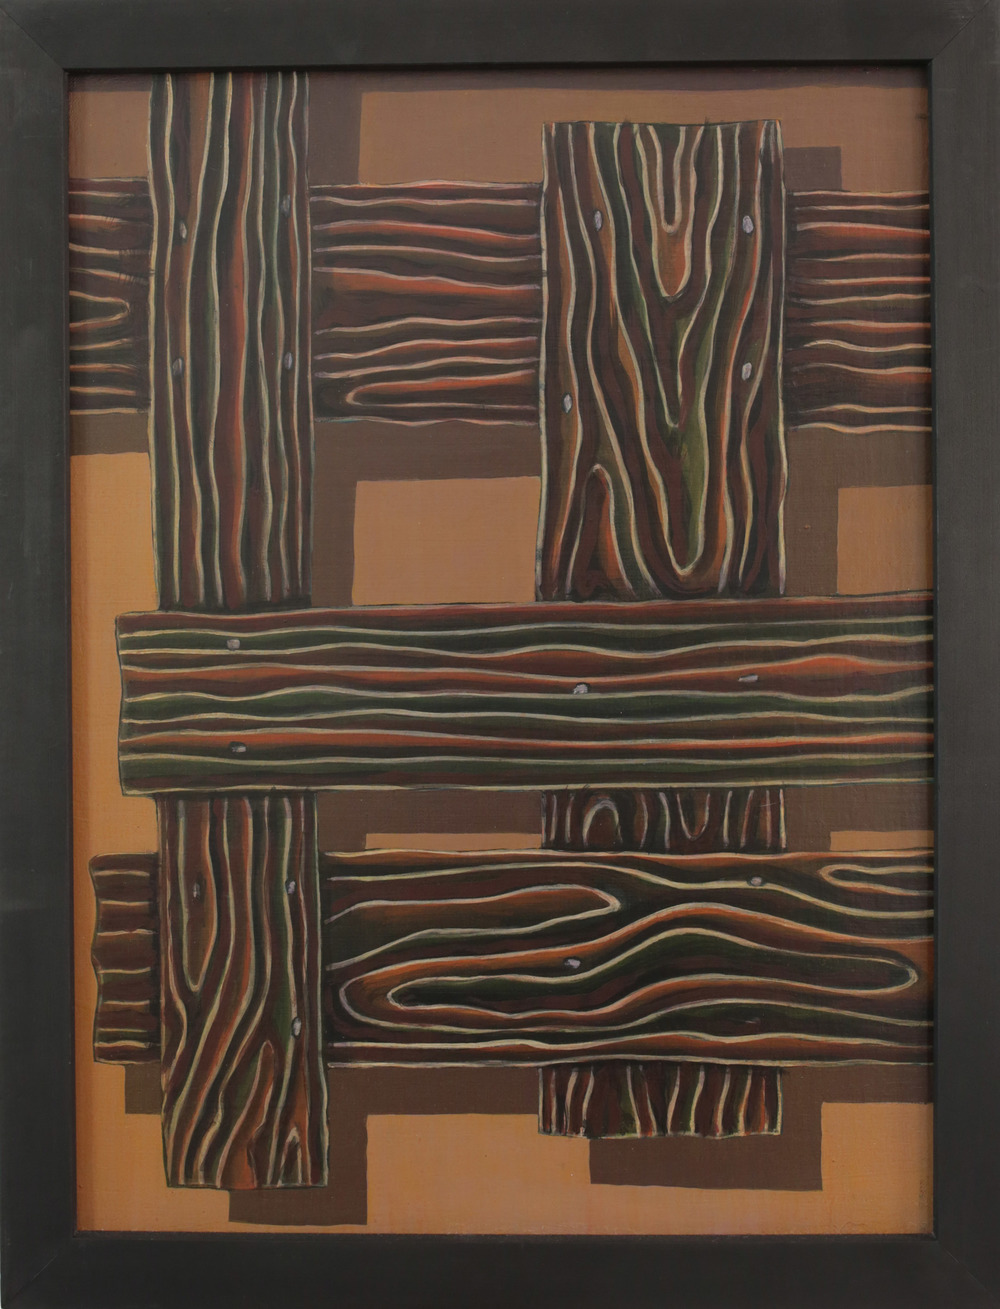 Cargo,   2014 P igment, acrylic polymer, and gesso on linen-mounted panel